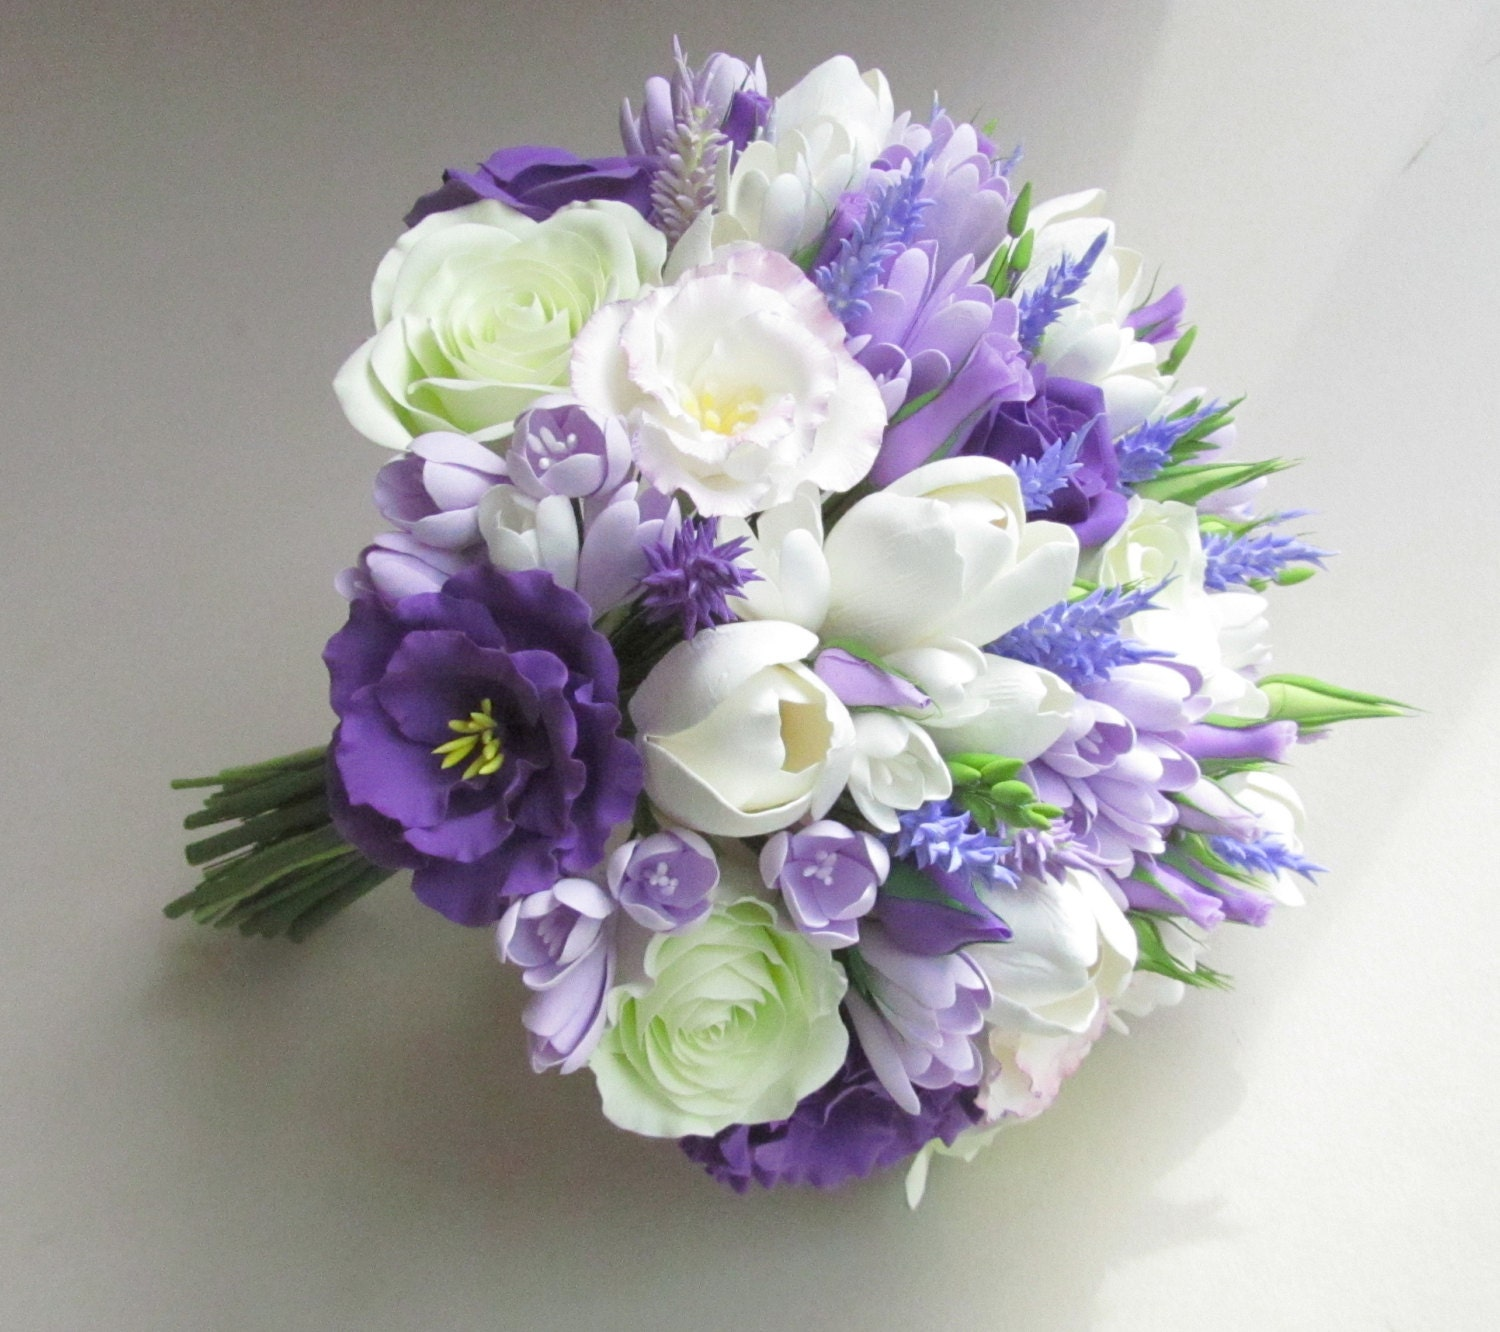 freesia eustoma tulip rose lavender bridal bouquet lilac. Black Bedroom Furniture Sets. Home Design Ideas